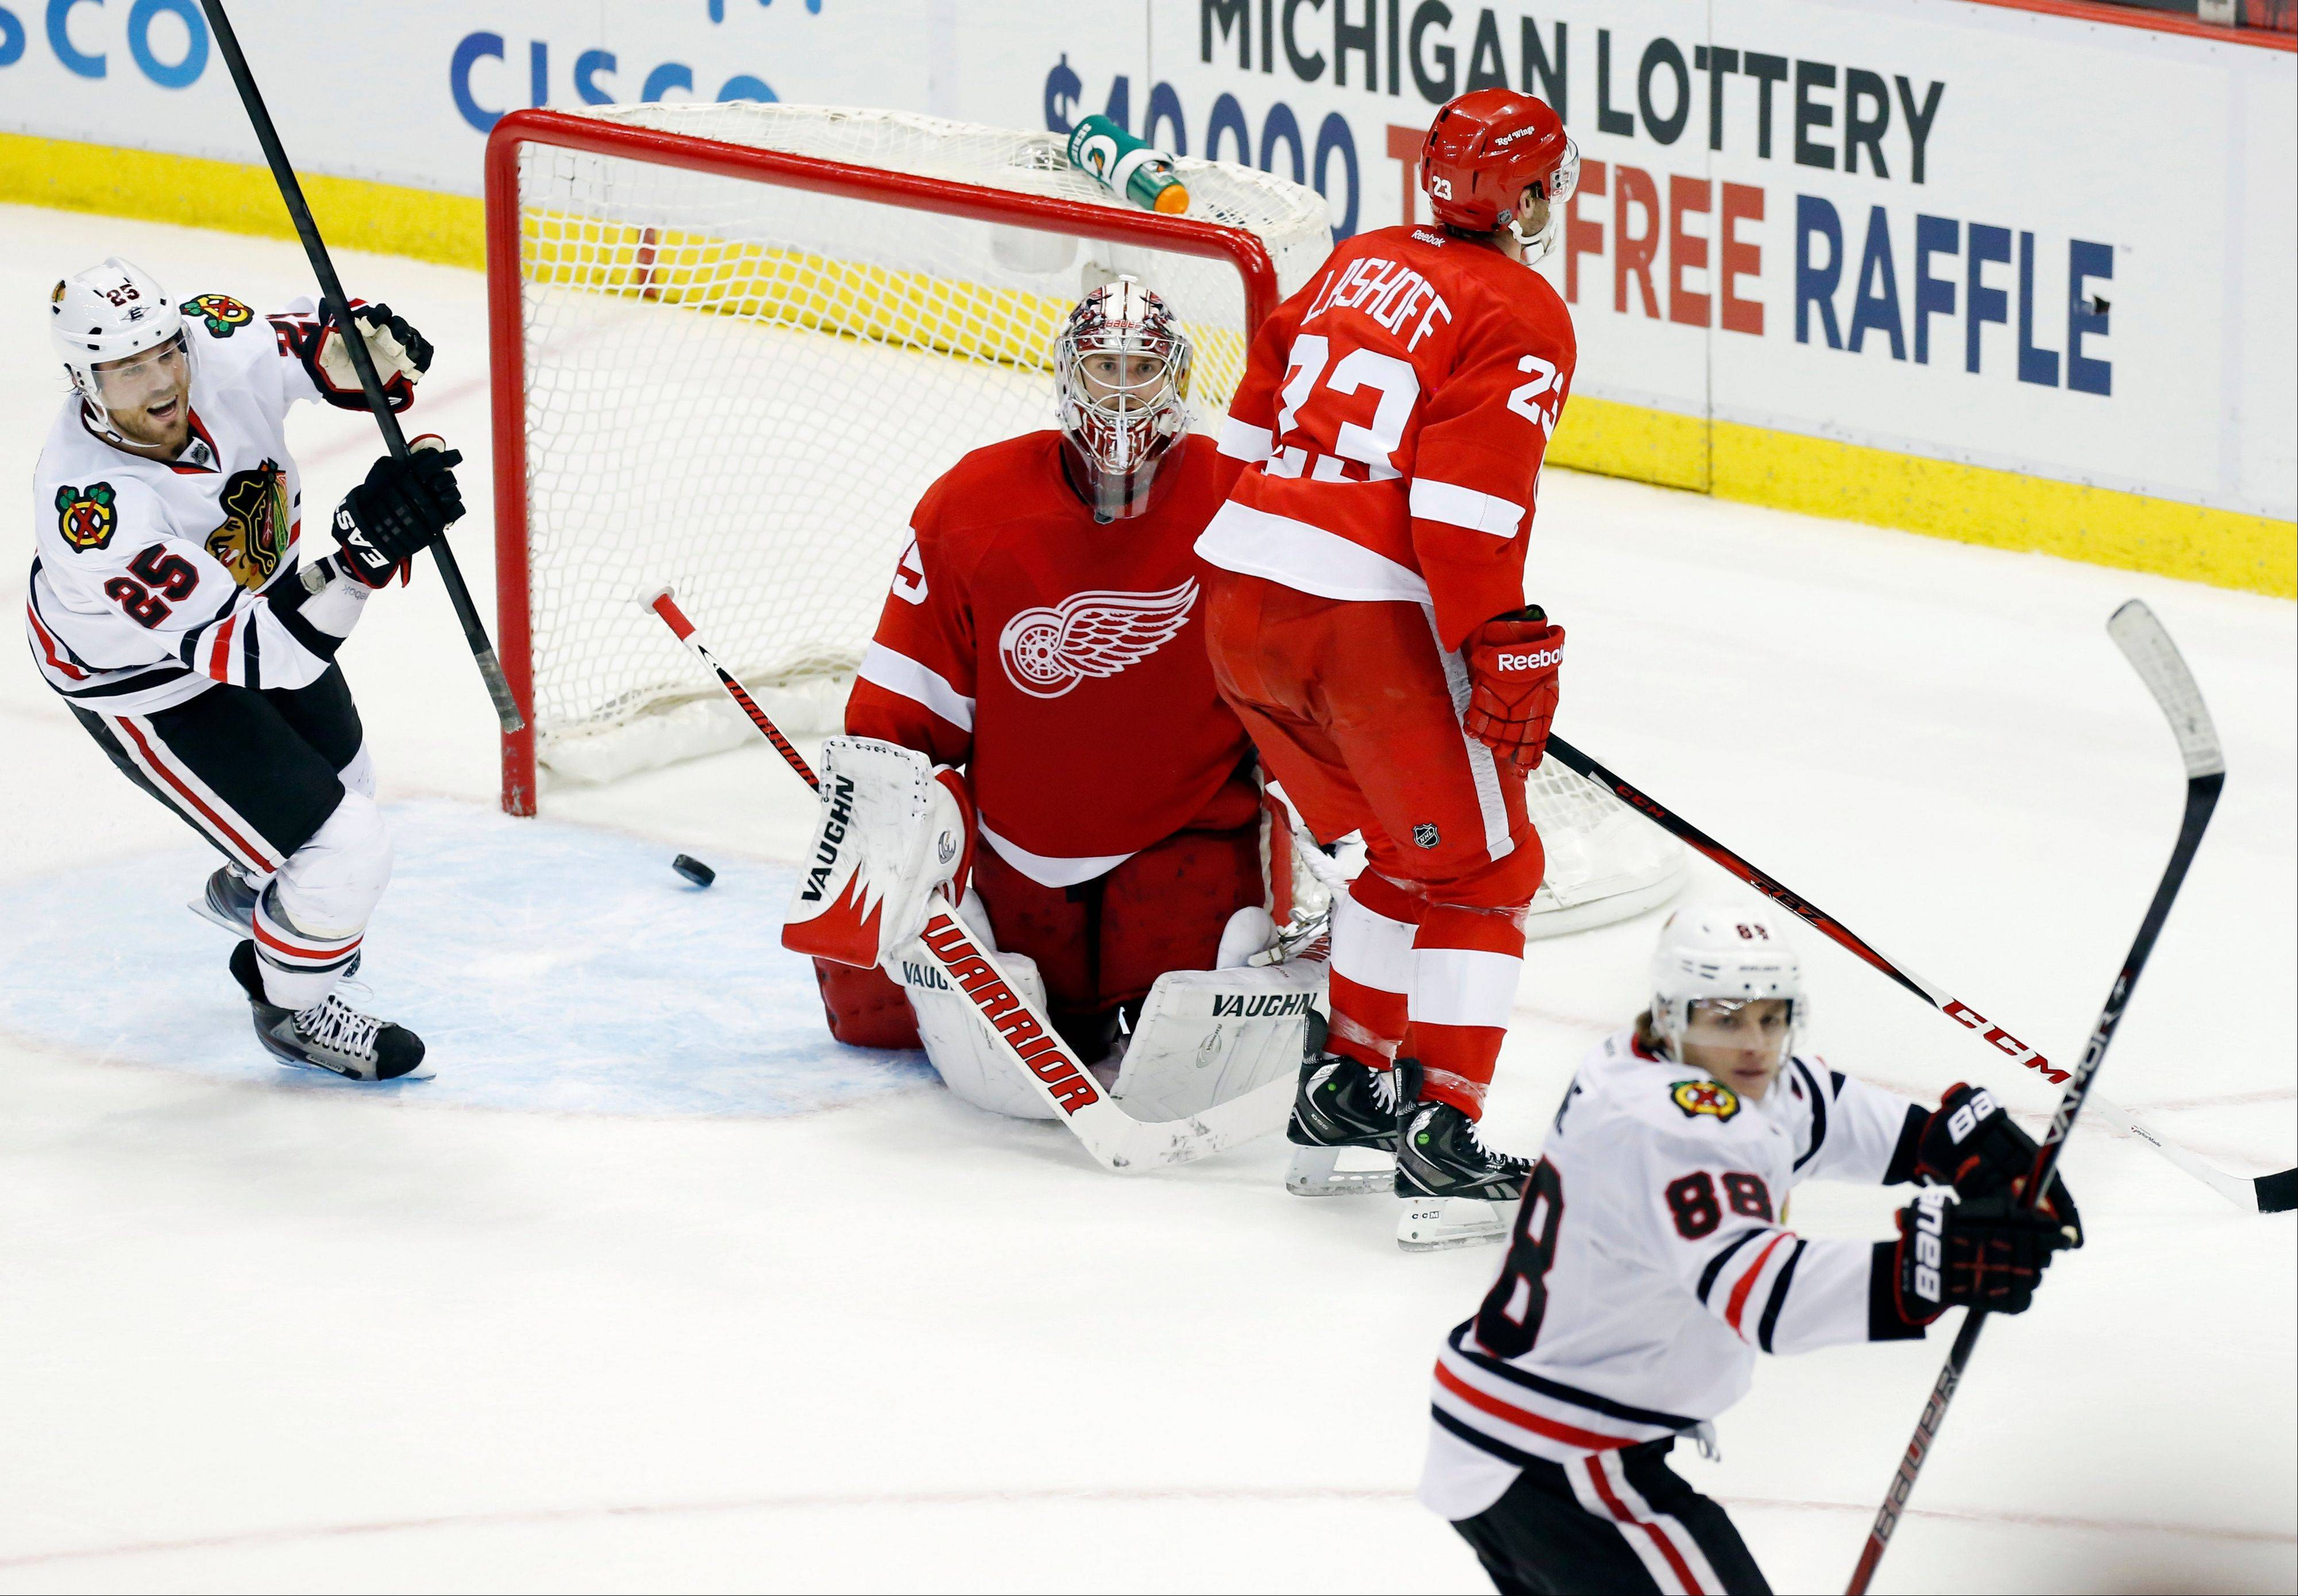 Viktor Stalberg, left, celebrates a goal by teammate Patrick Kane, right, against Detroit Red Wings goalie Jimmy Howard on Sunday in Detroit. Kane scored again in a shootout to help defeat the Red Wings 2-1.